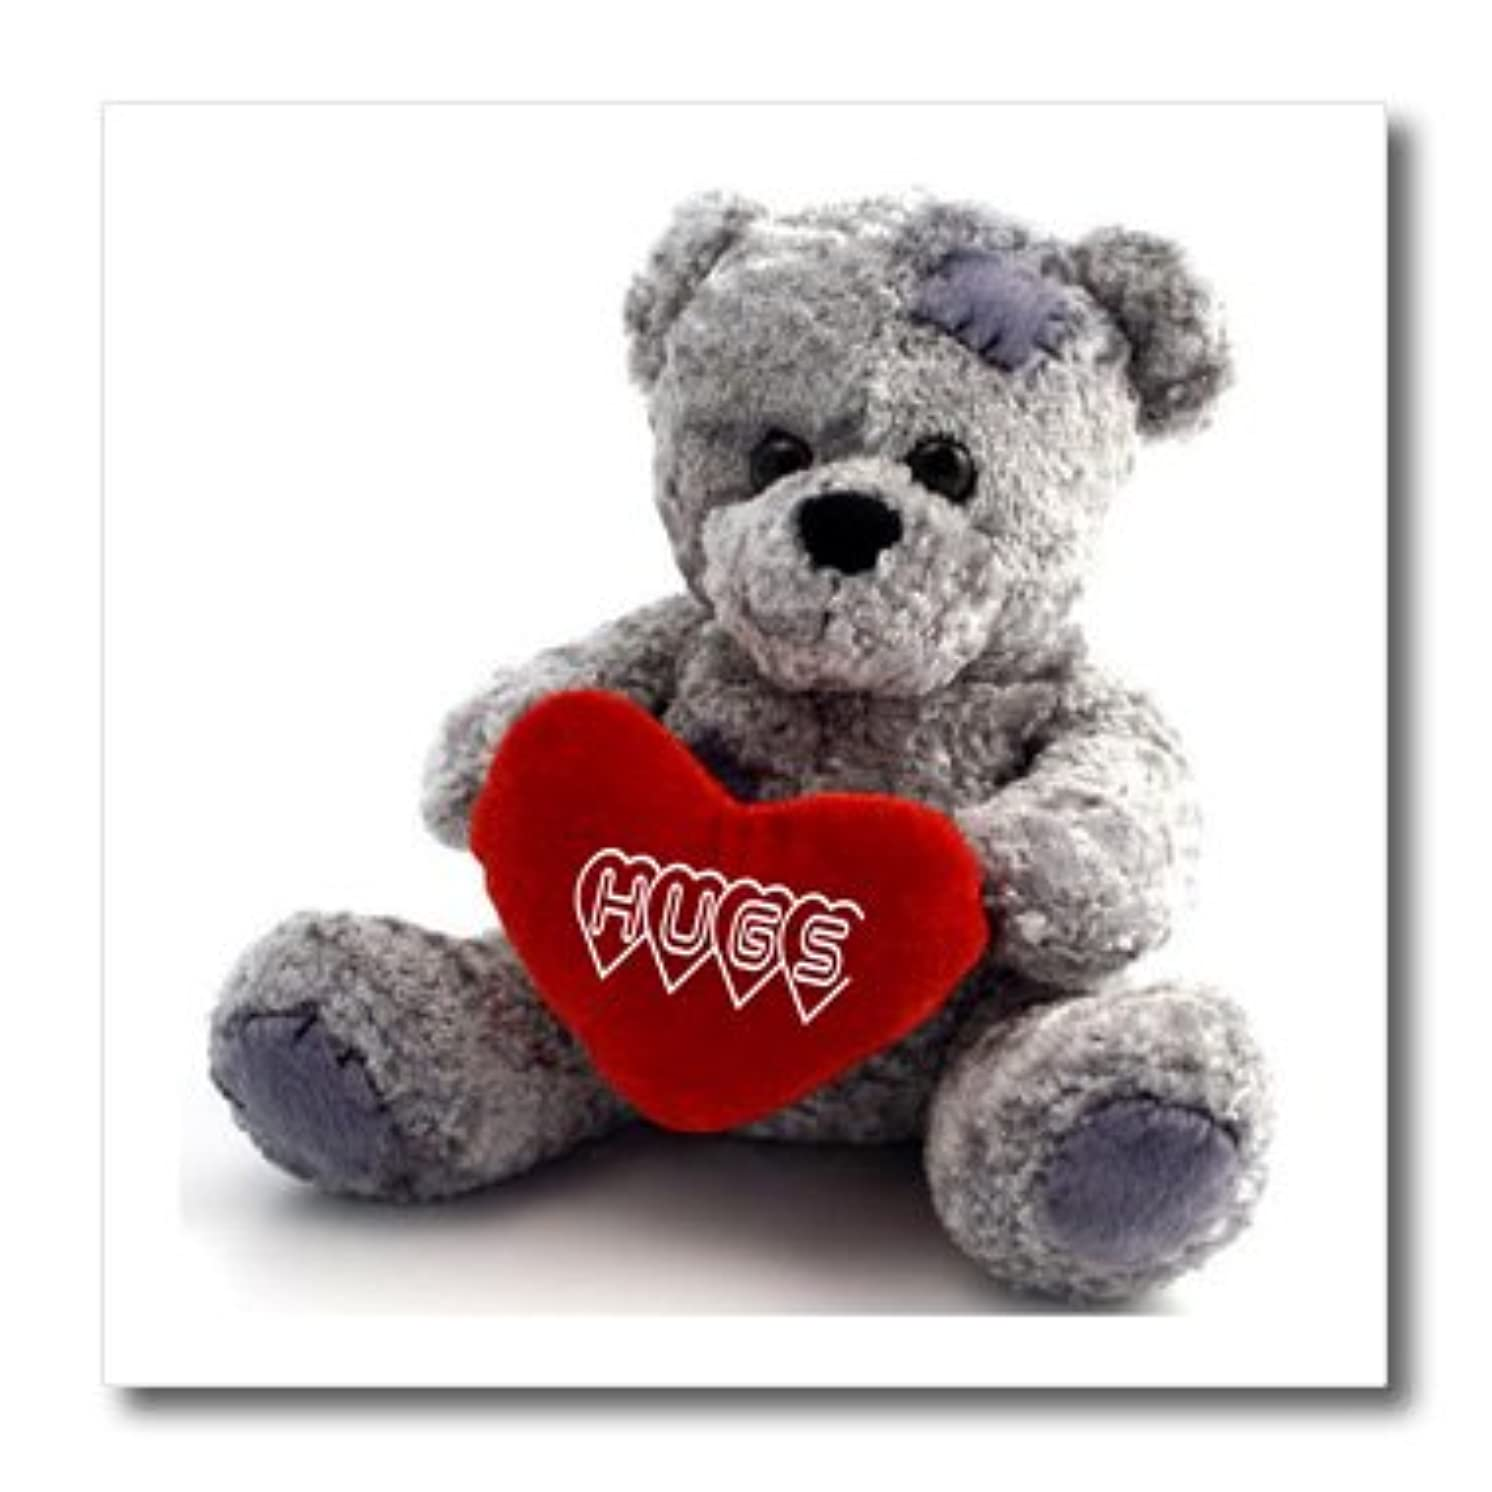 3dRose Gray Teddy Bear with Hugs on A Red Heart-Iron on Heat Transfer, 8 by 8